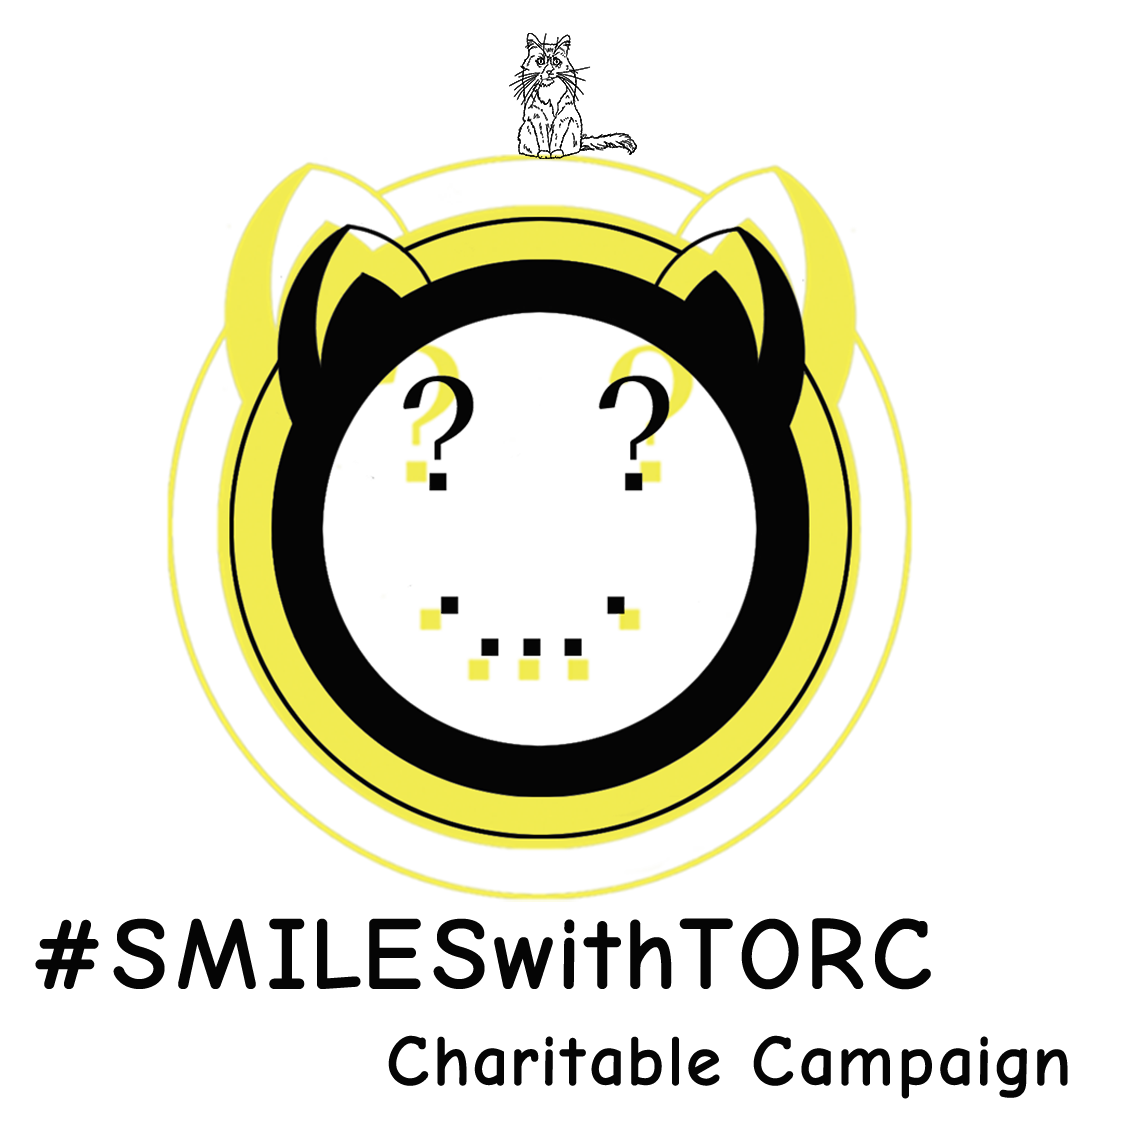 The #SMILESwithTORC Charitable Campaign focuses on bringing the joy of reading and discovery to children from all walks of life. Children will be able to let their imaginations wander the globe with TORC the CAT on his adventures. -